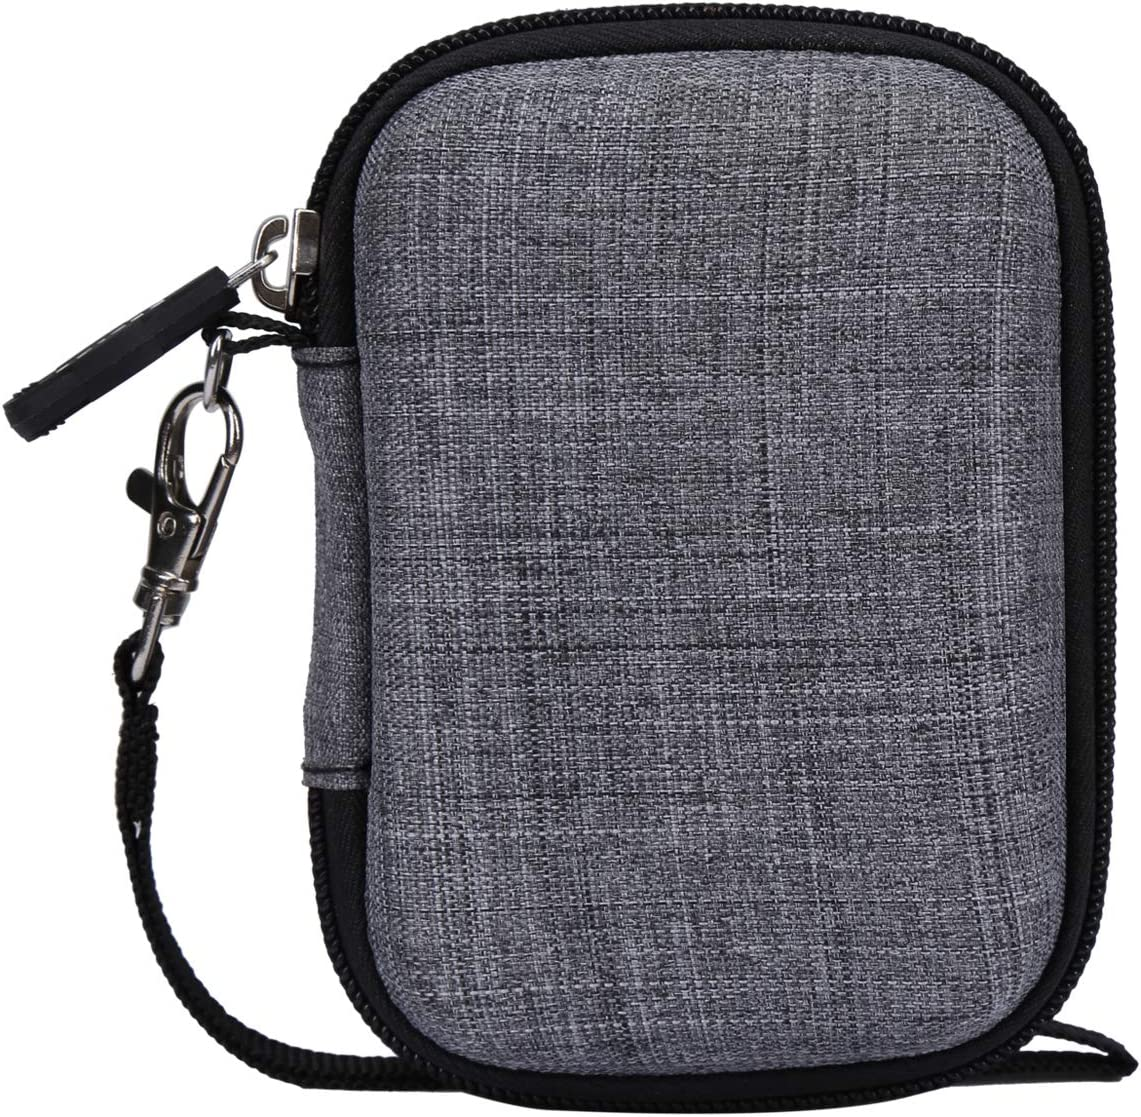 Aproca Hard Storage Travel Case for Logitech M535 / M335 Compact Bluetooth Wireless Optical Mouse (Gray)